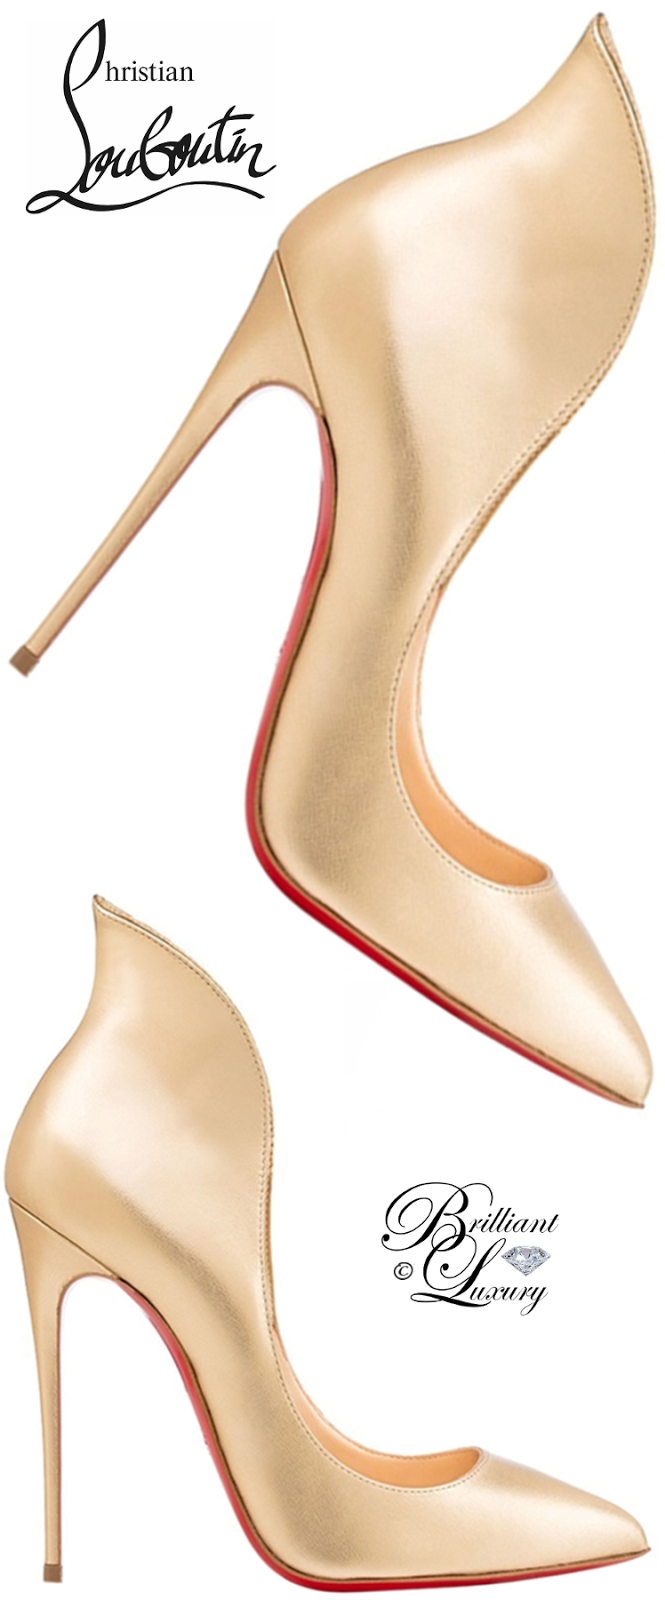 Brilliant Luxury ♦ Christian Louboutin Mea Culpa Flared Red Sole Pump #gold